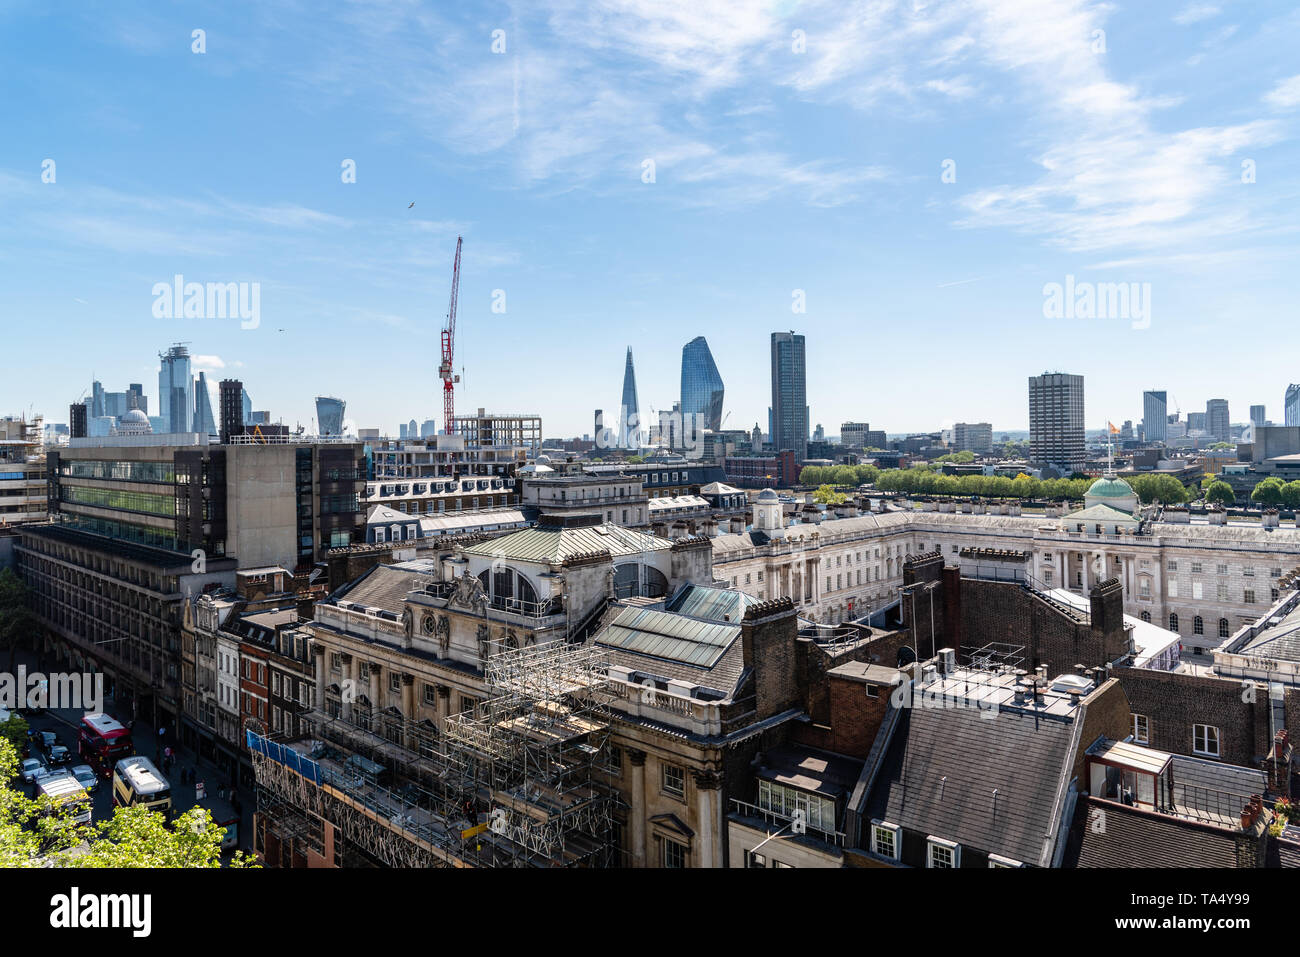 London, UK - May 14, 2019: Cityscape of the City of London. High angle view a sunny day Stock Photo